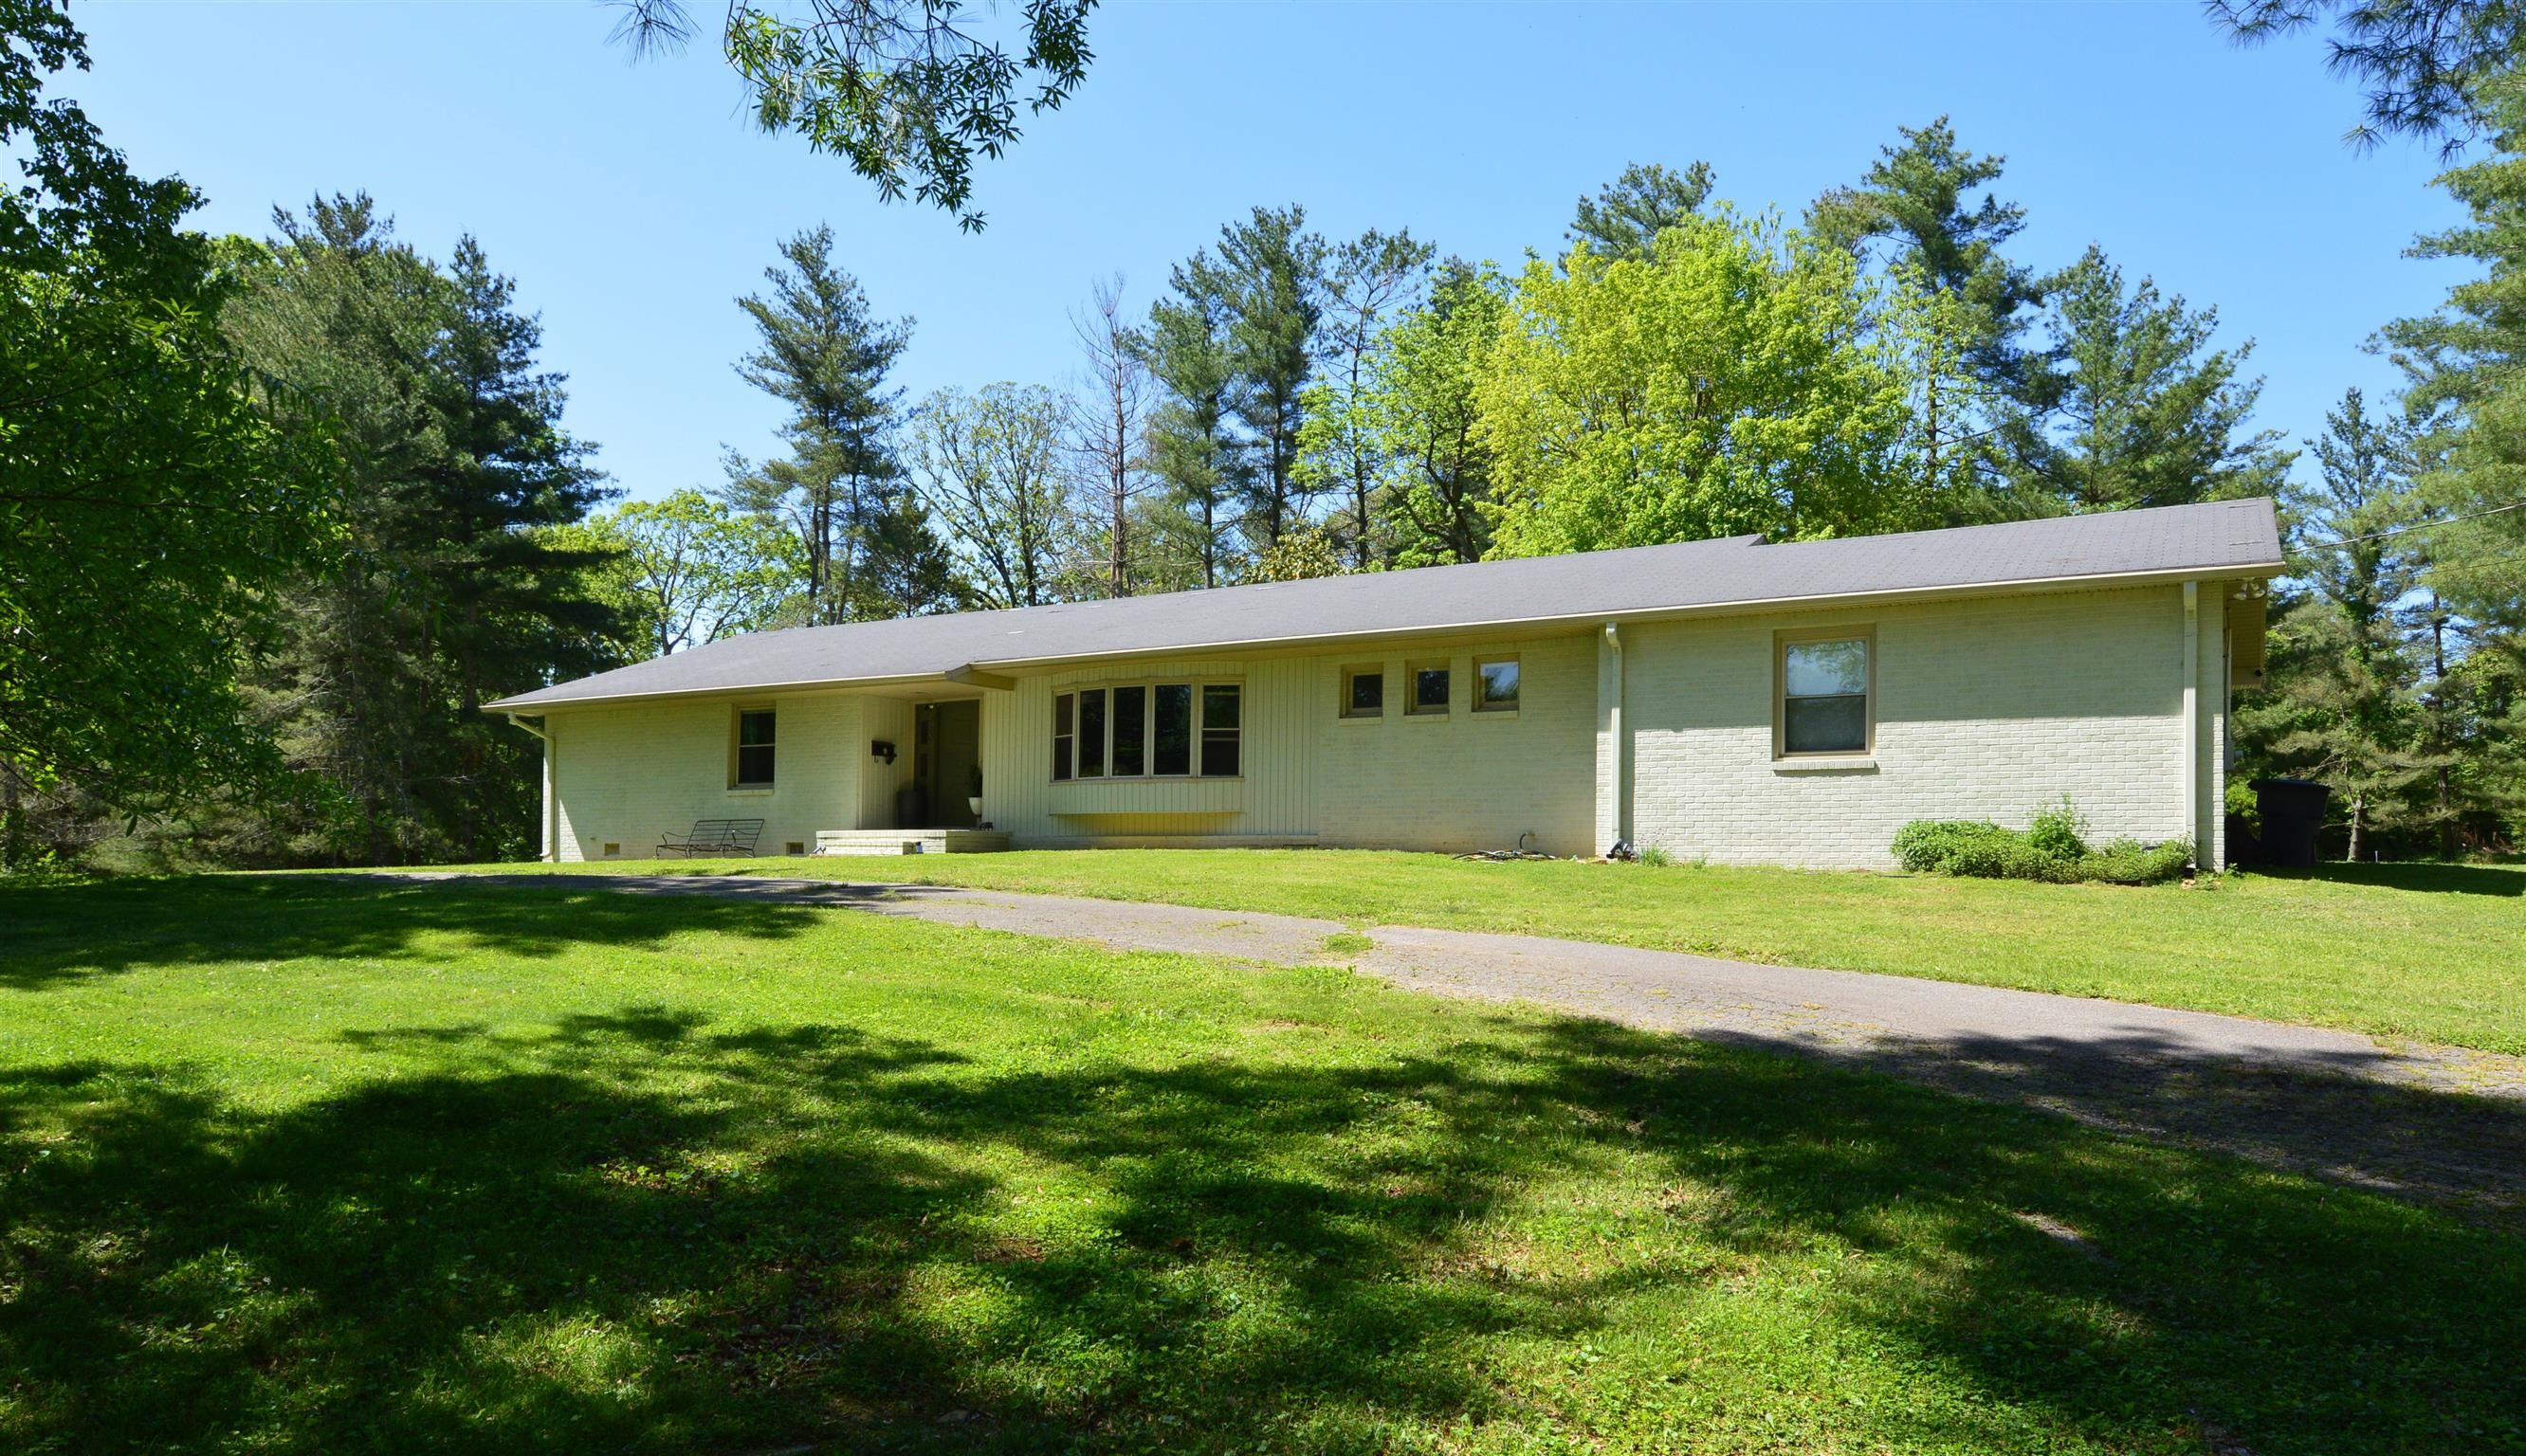 660 Freeze St, Cookeville, TN 38501 - Cookeville, TN real estate listing